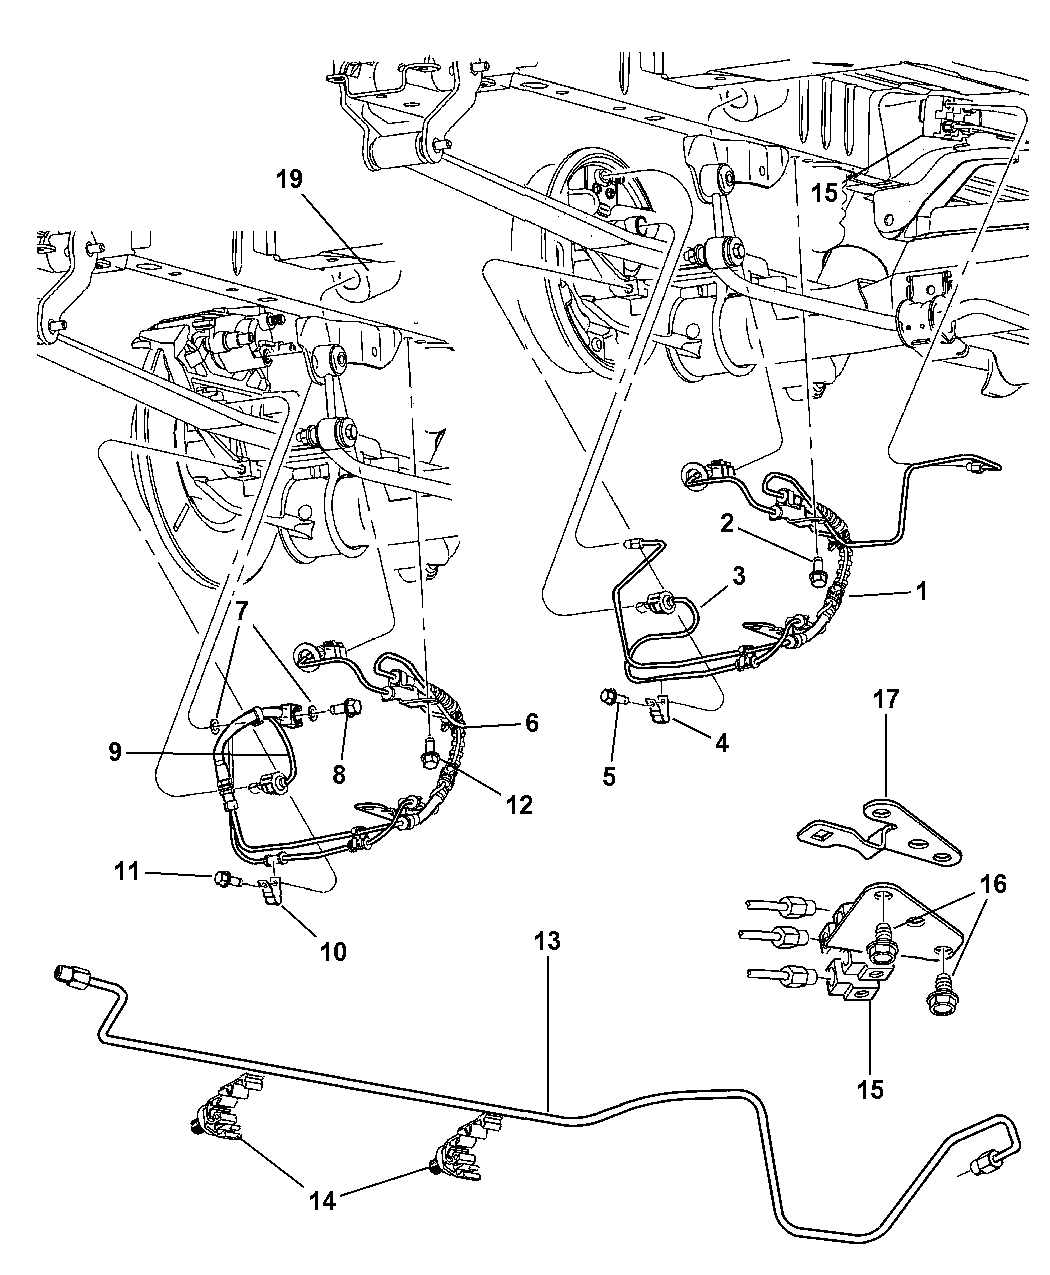 2005 Dodge Caravan Parts Diagram Hoses • Wiring Diagram